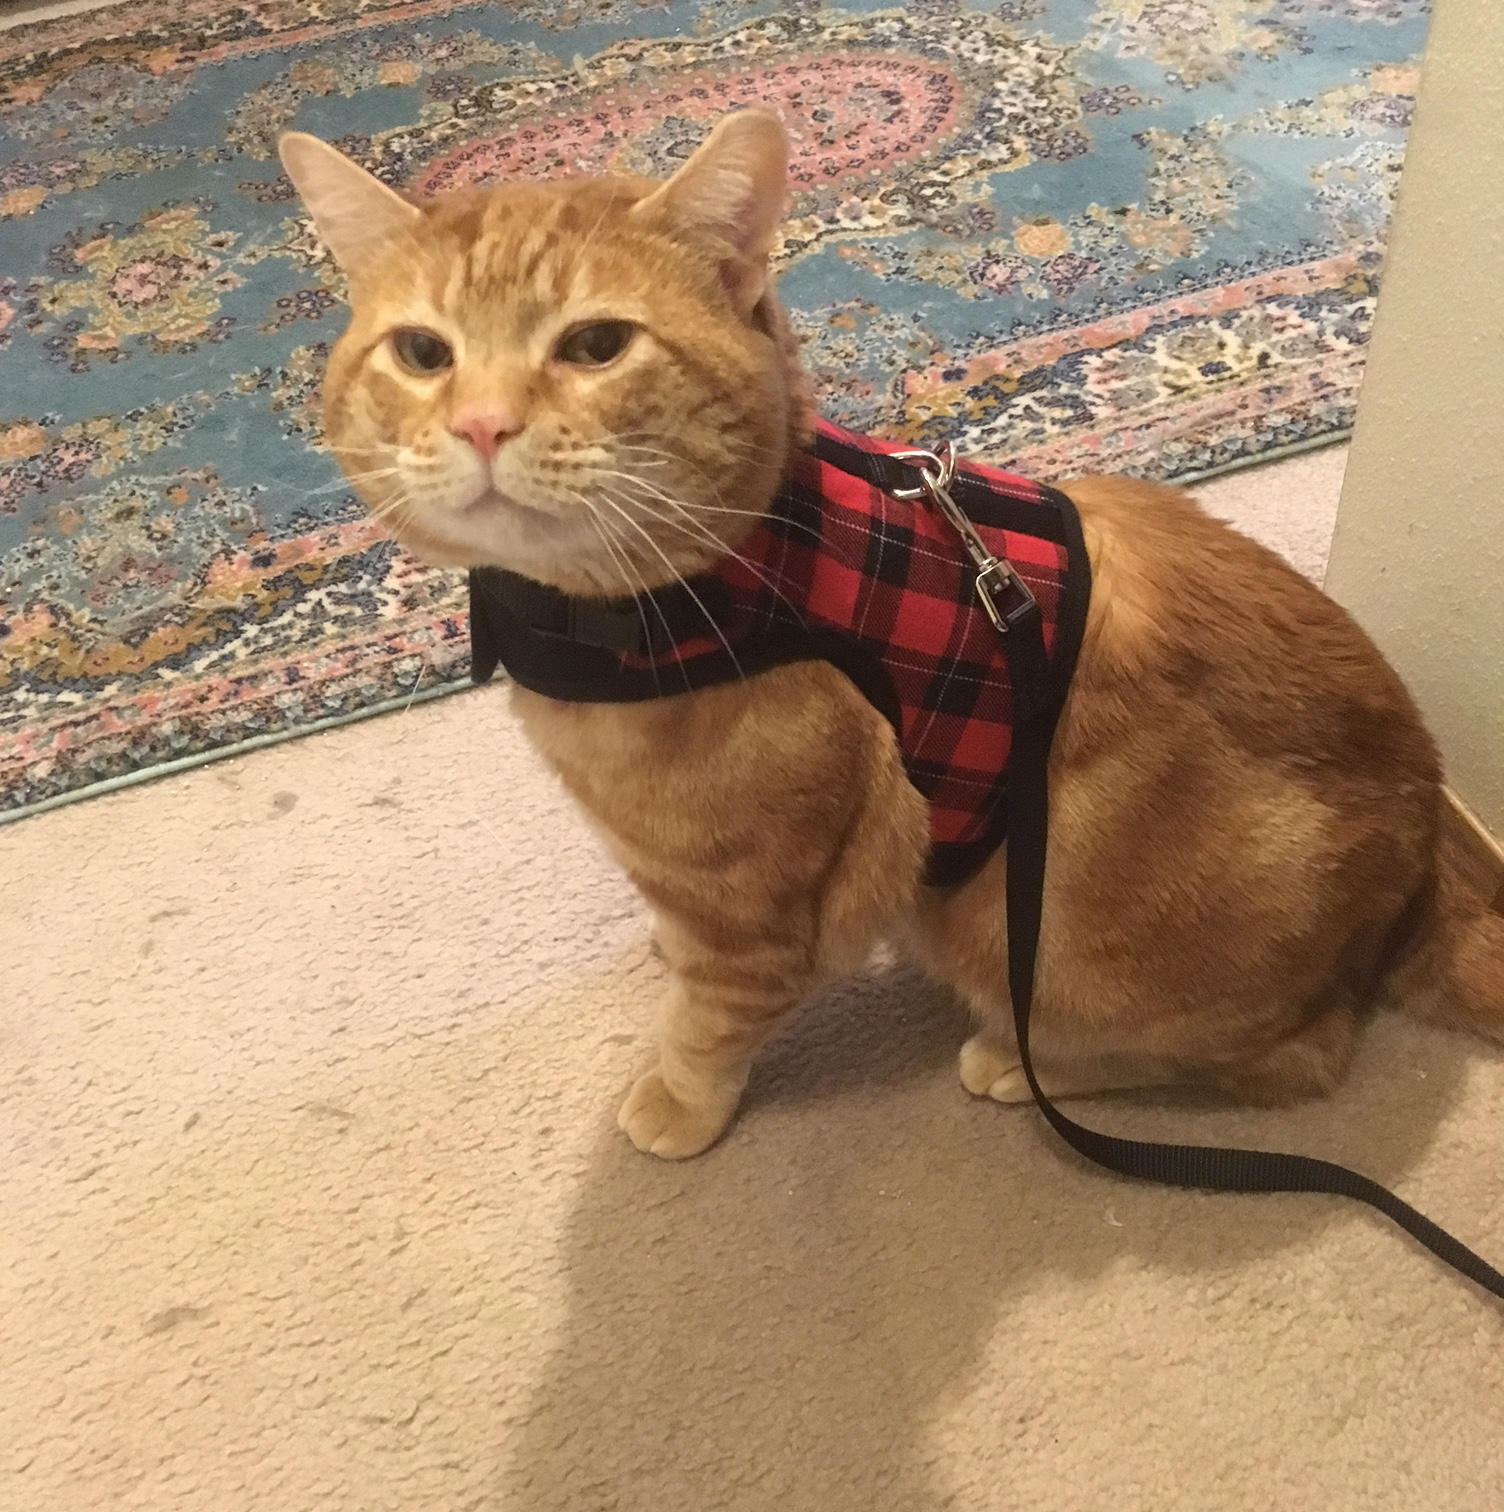 Scooby scottish harness